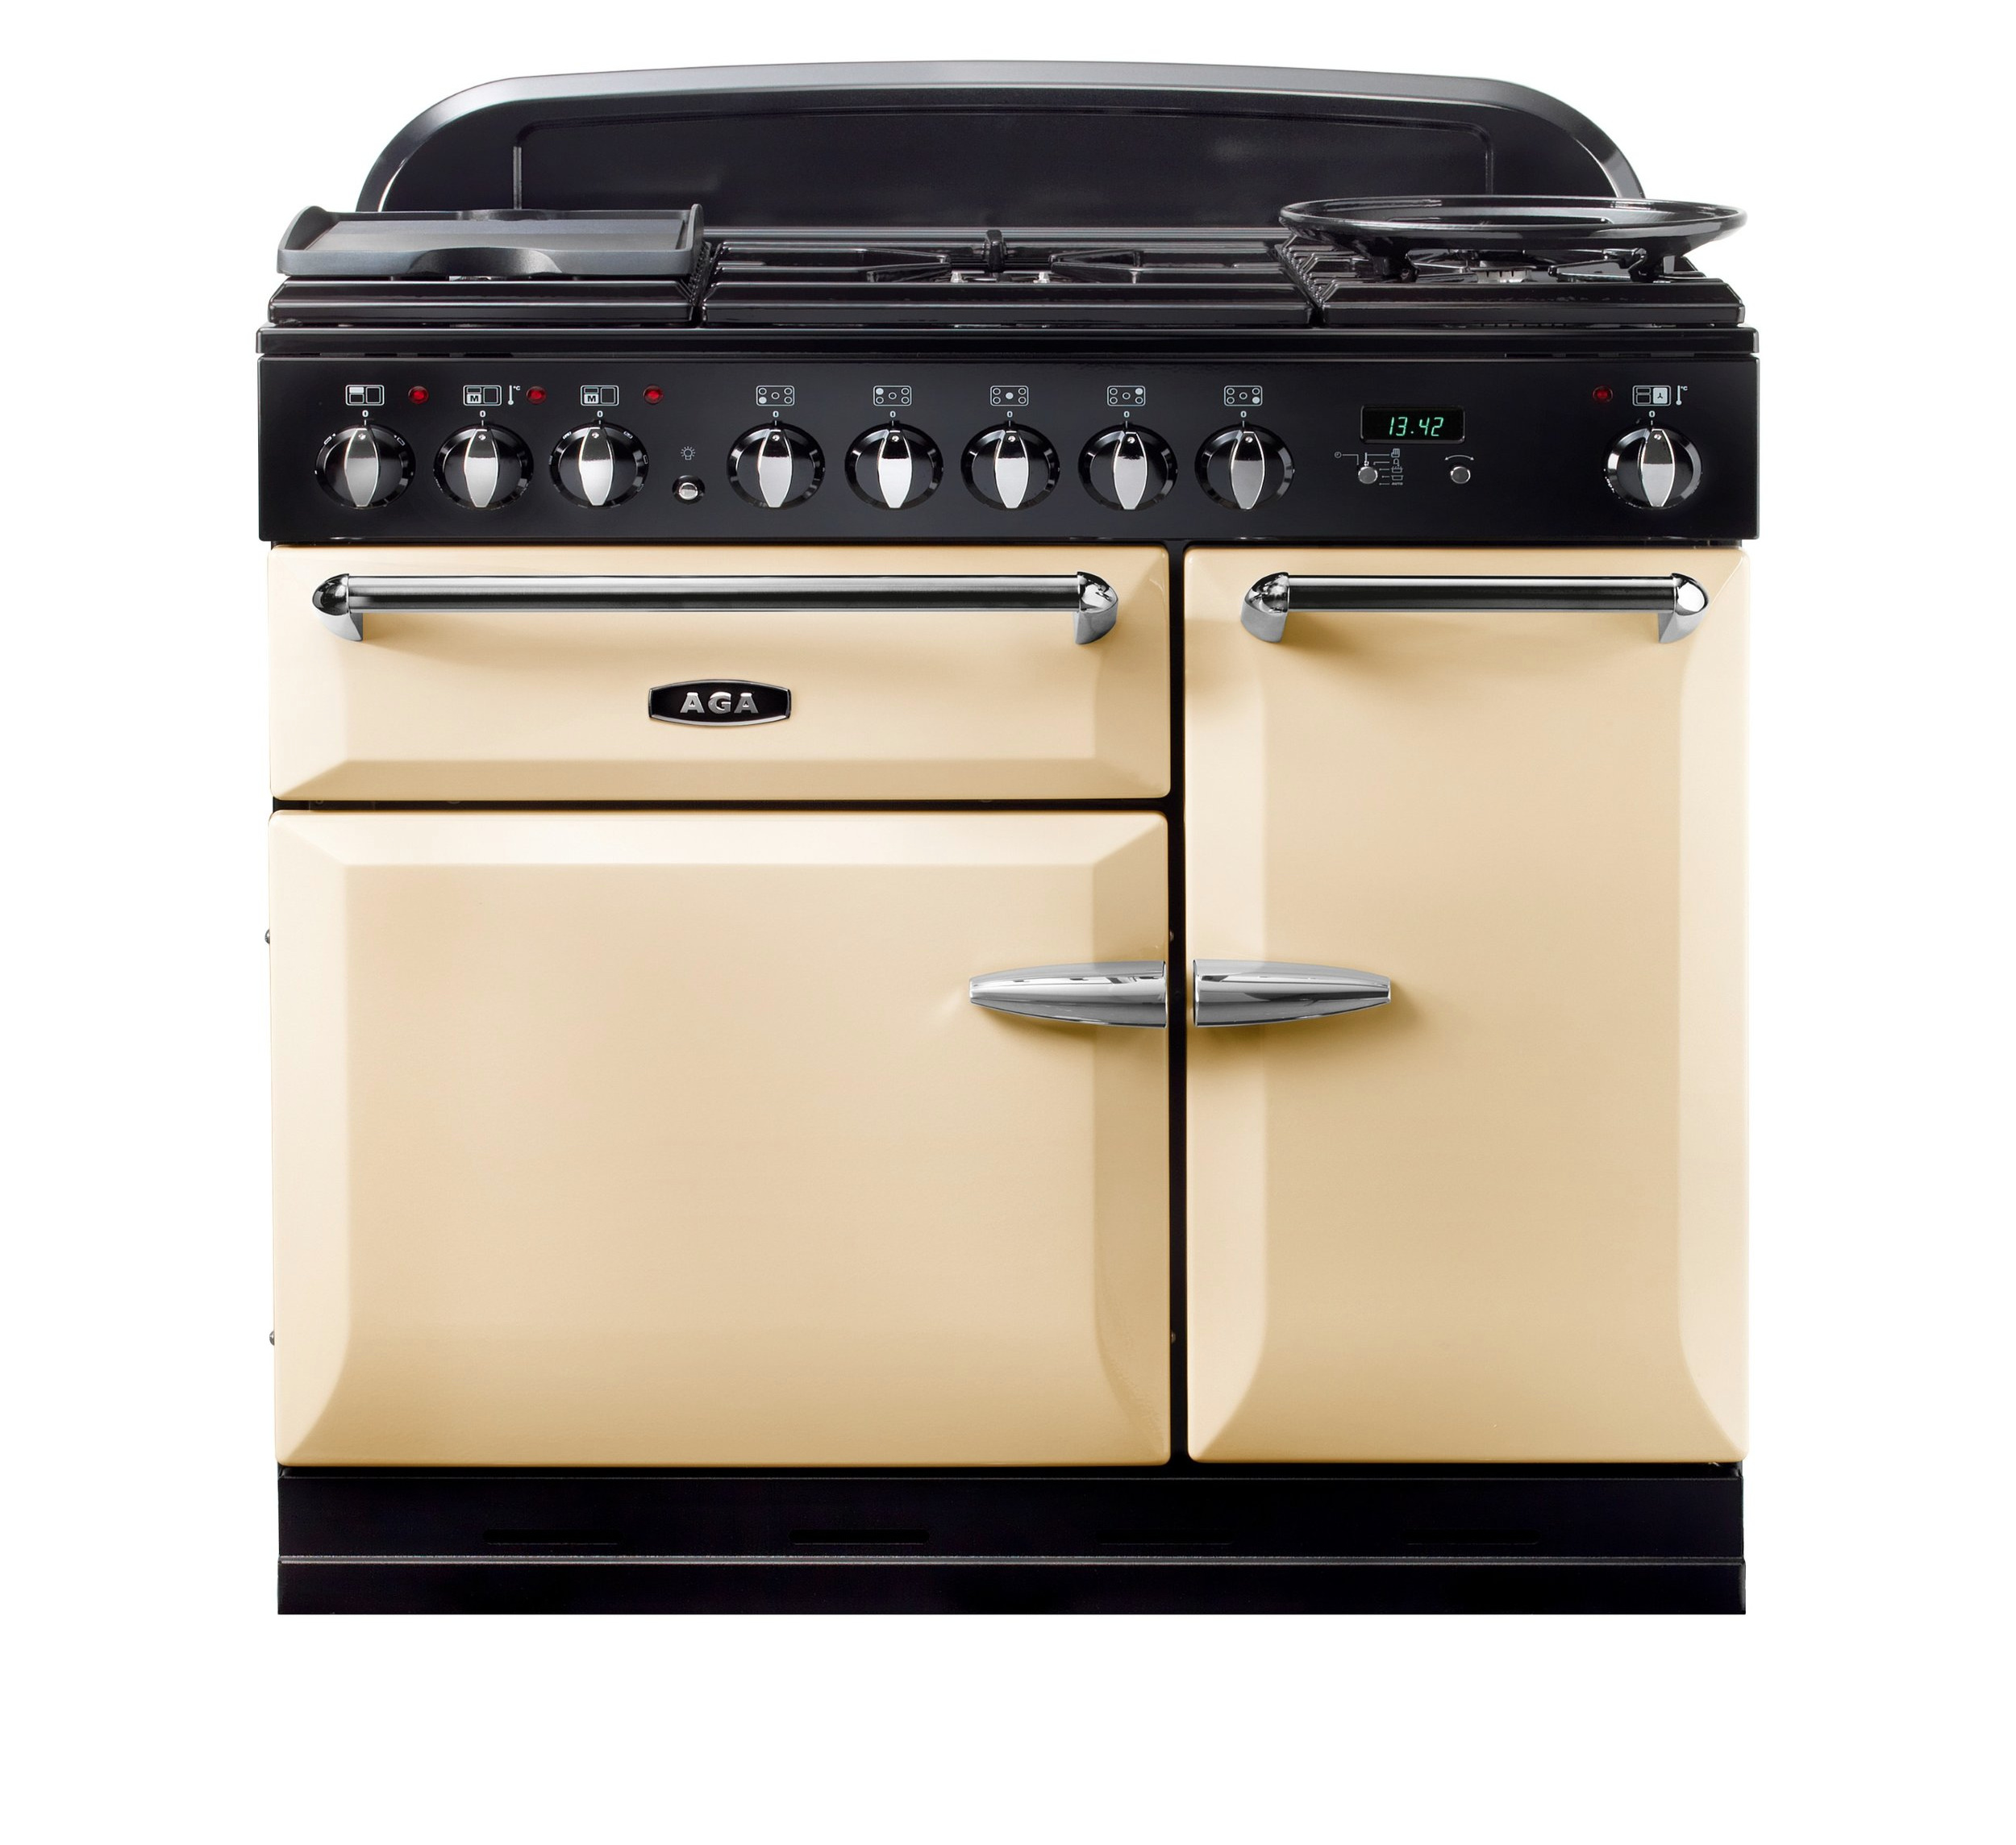 Masterchef XL 90 Dual Fuel In Cream For £2575.00 Including VAT & Delivery* - *Delivery/Connection within our area of operation, additional £150.00 off if just collection from our Warehouse.1 year part warranty.